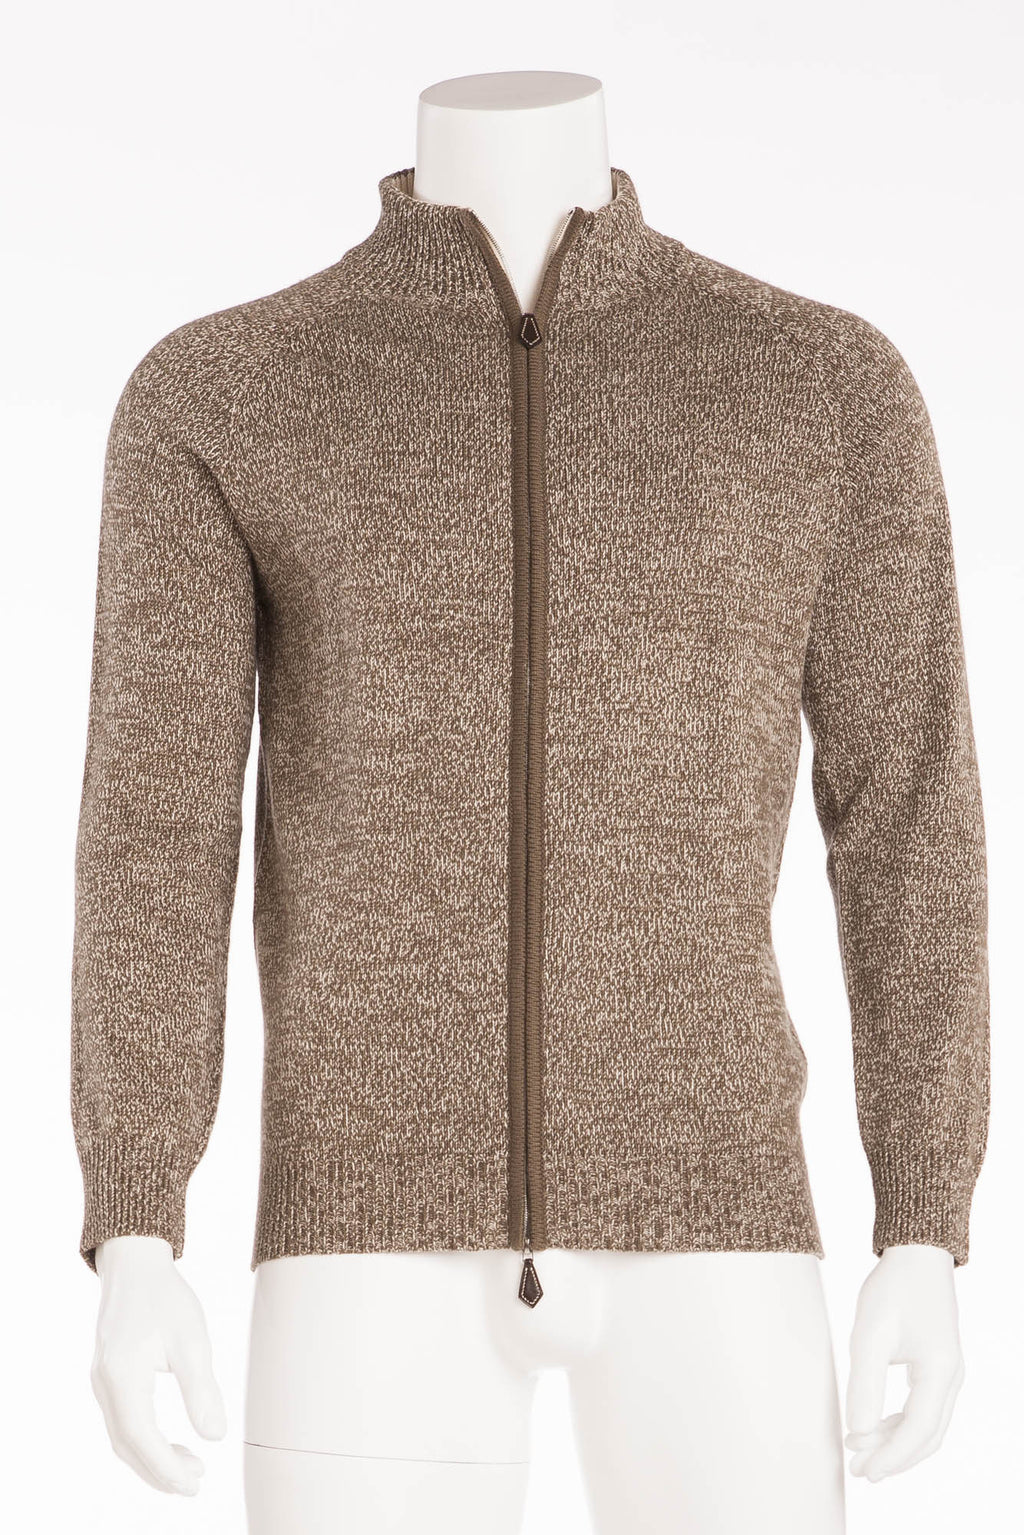 Hermes - New Men's Long Sleeve Zip Cardigan - L